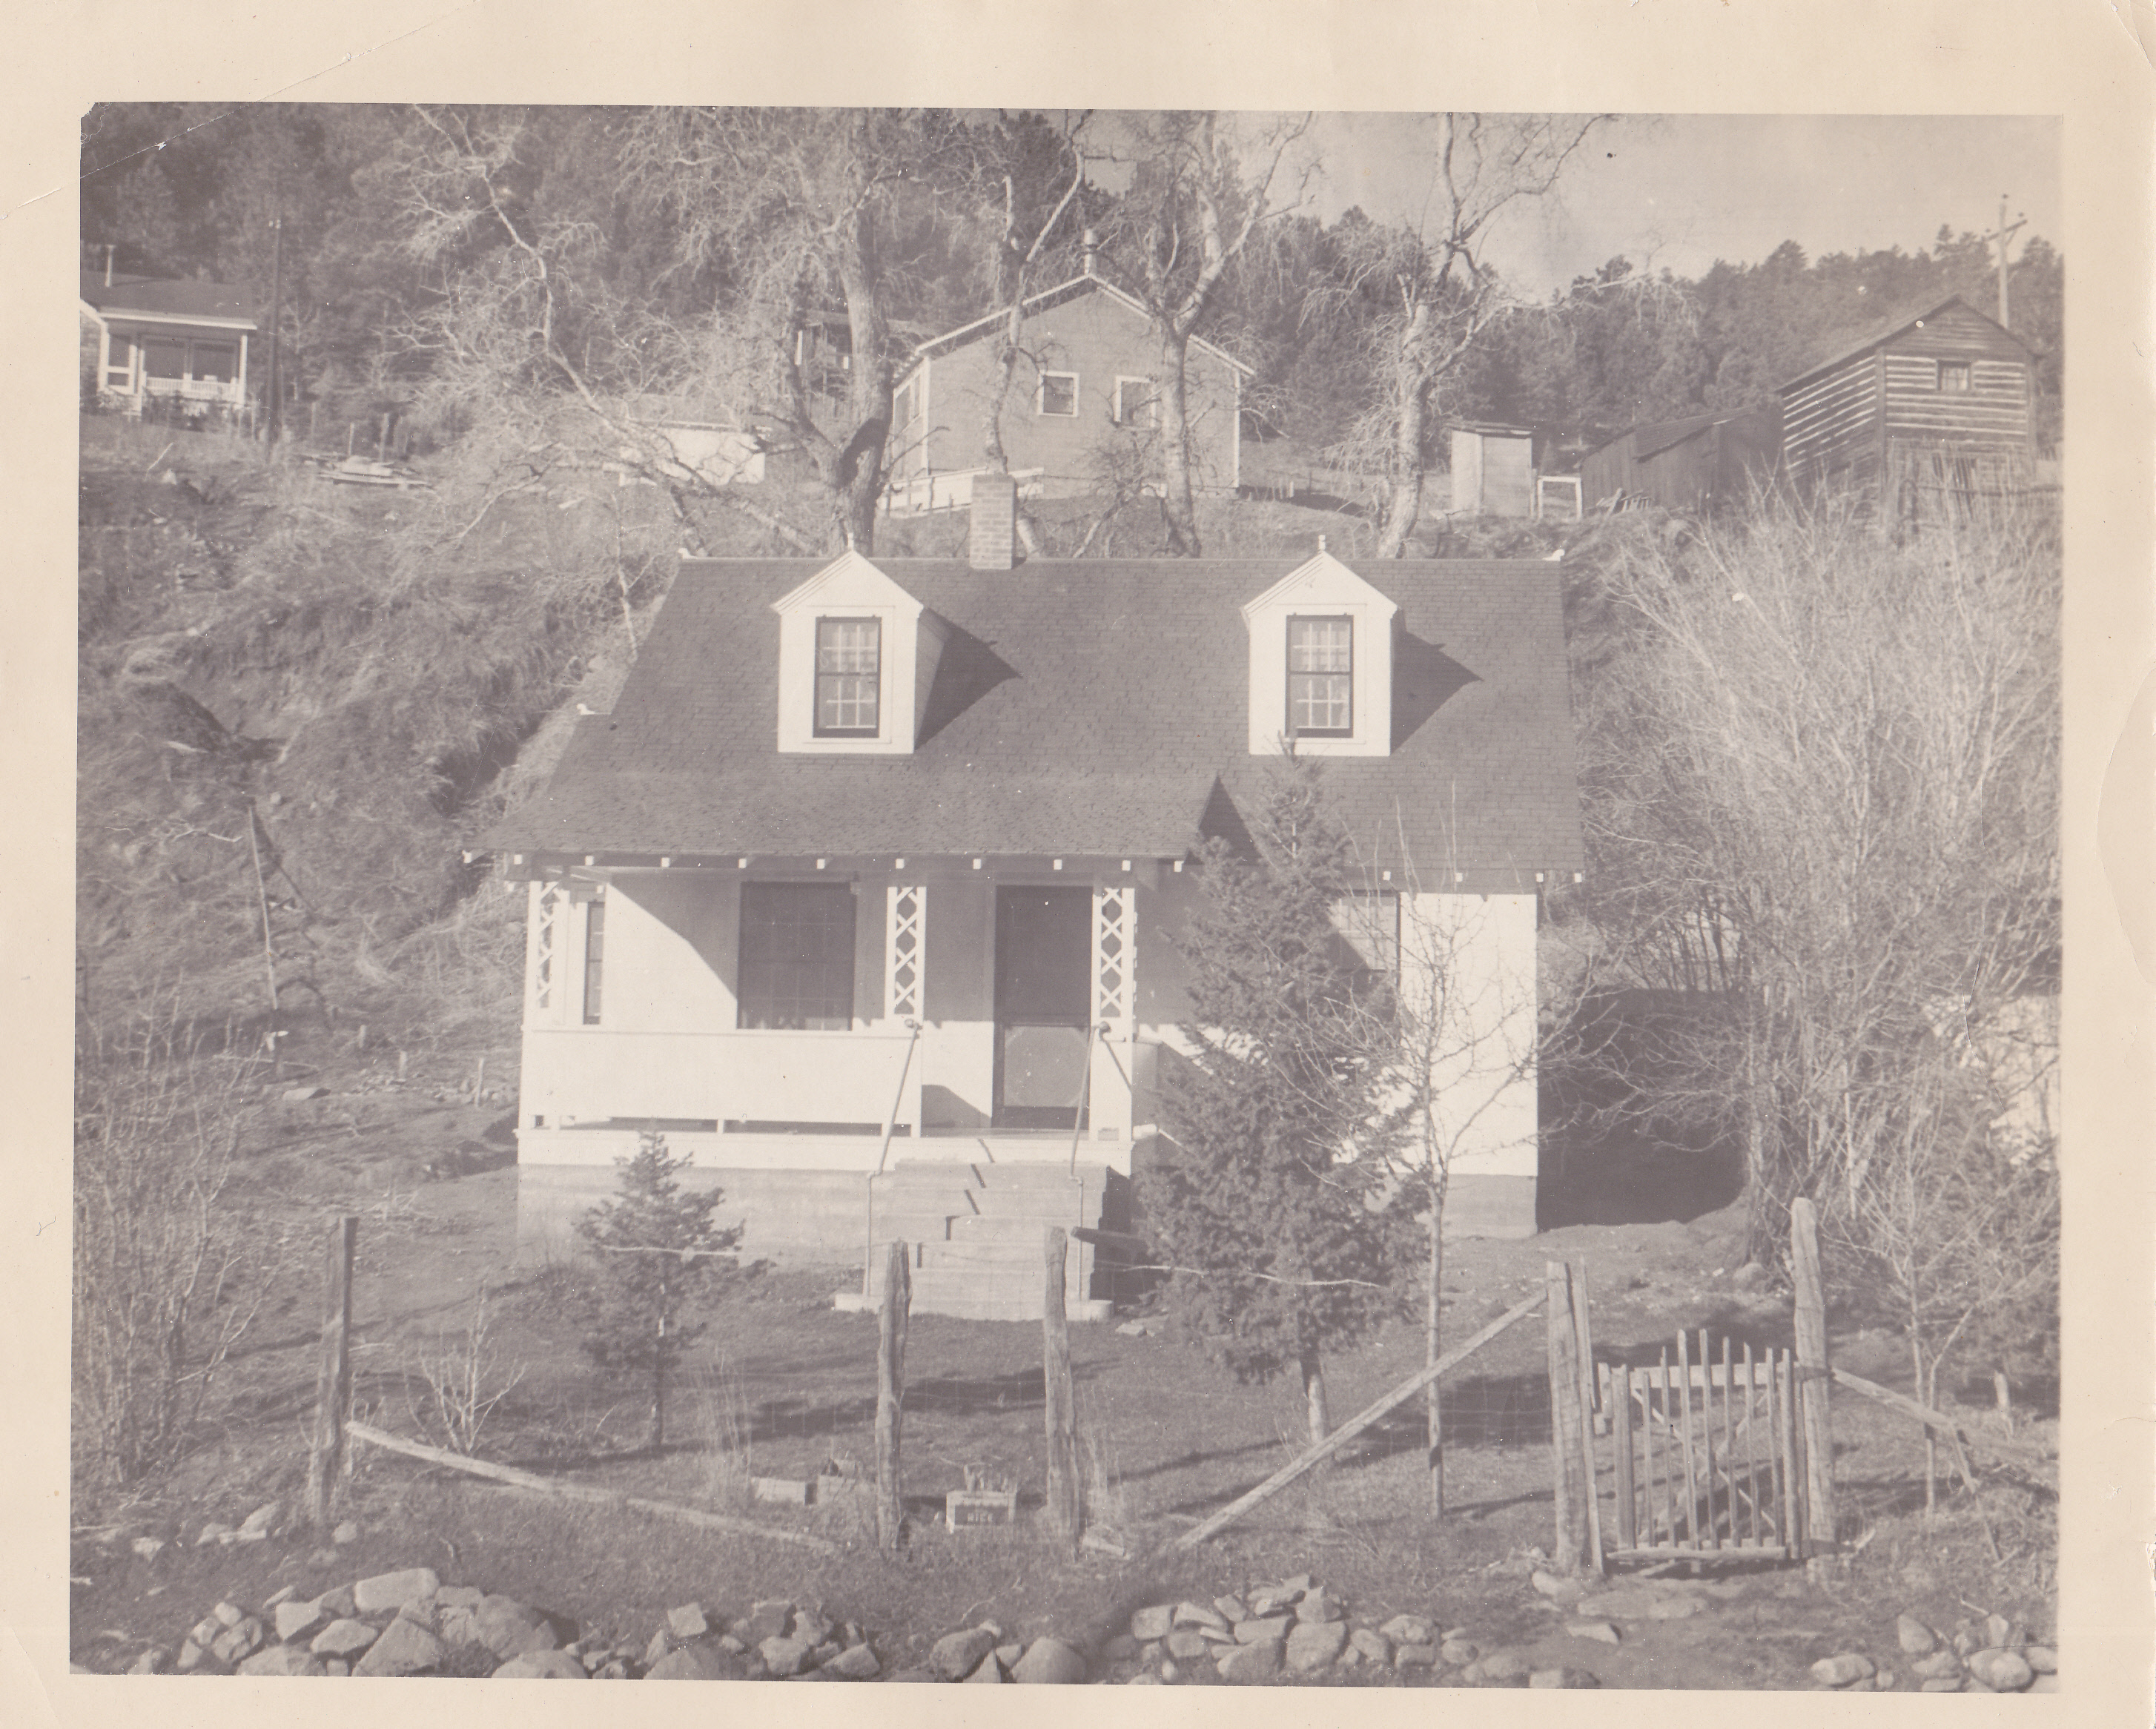 A Difficult Beginning: Researching the Mountain House